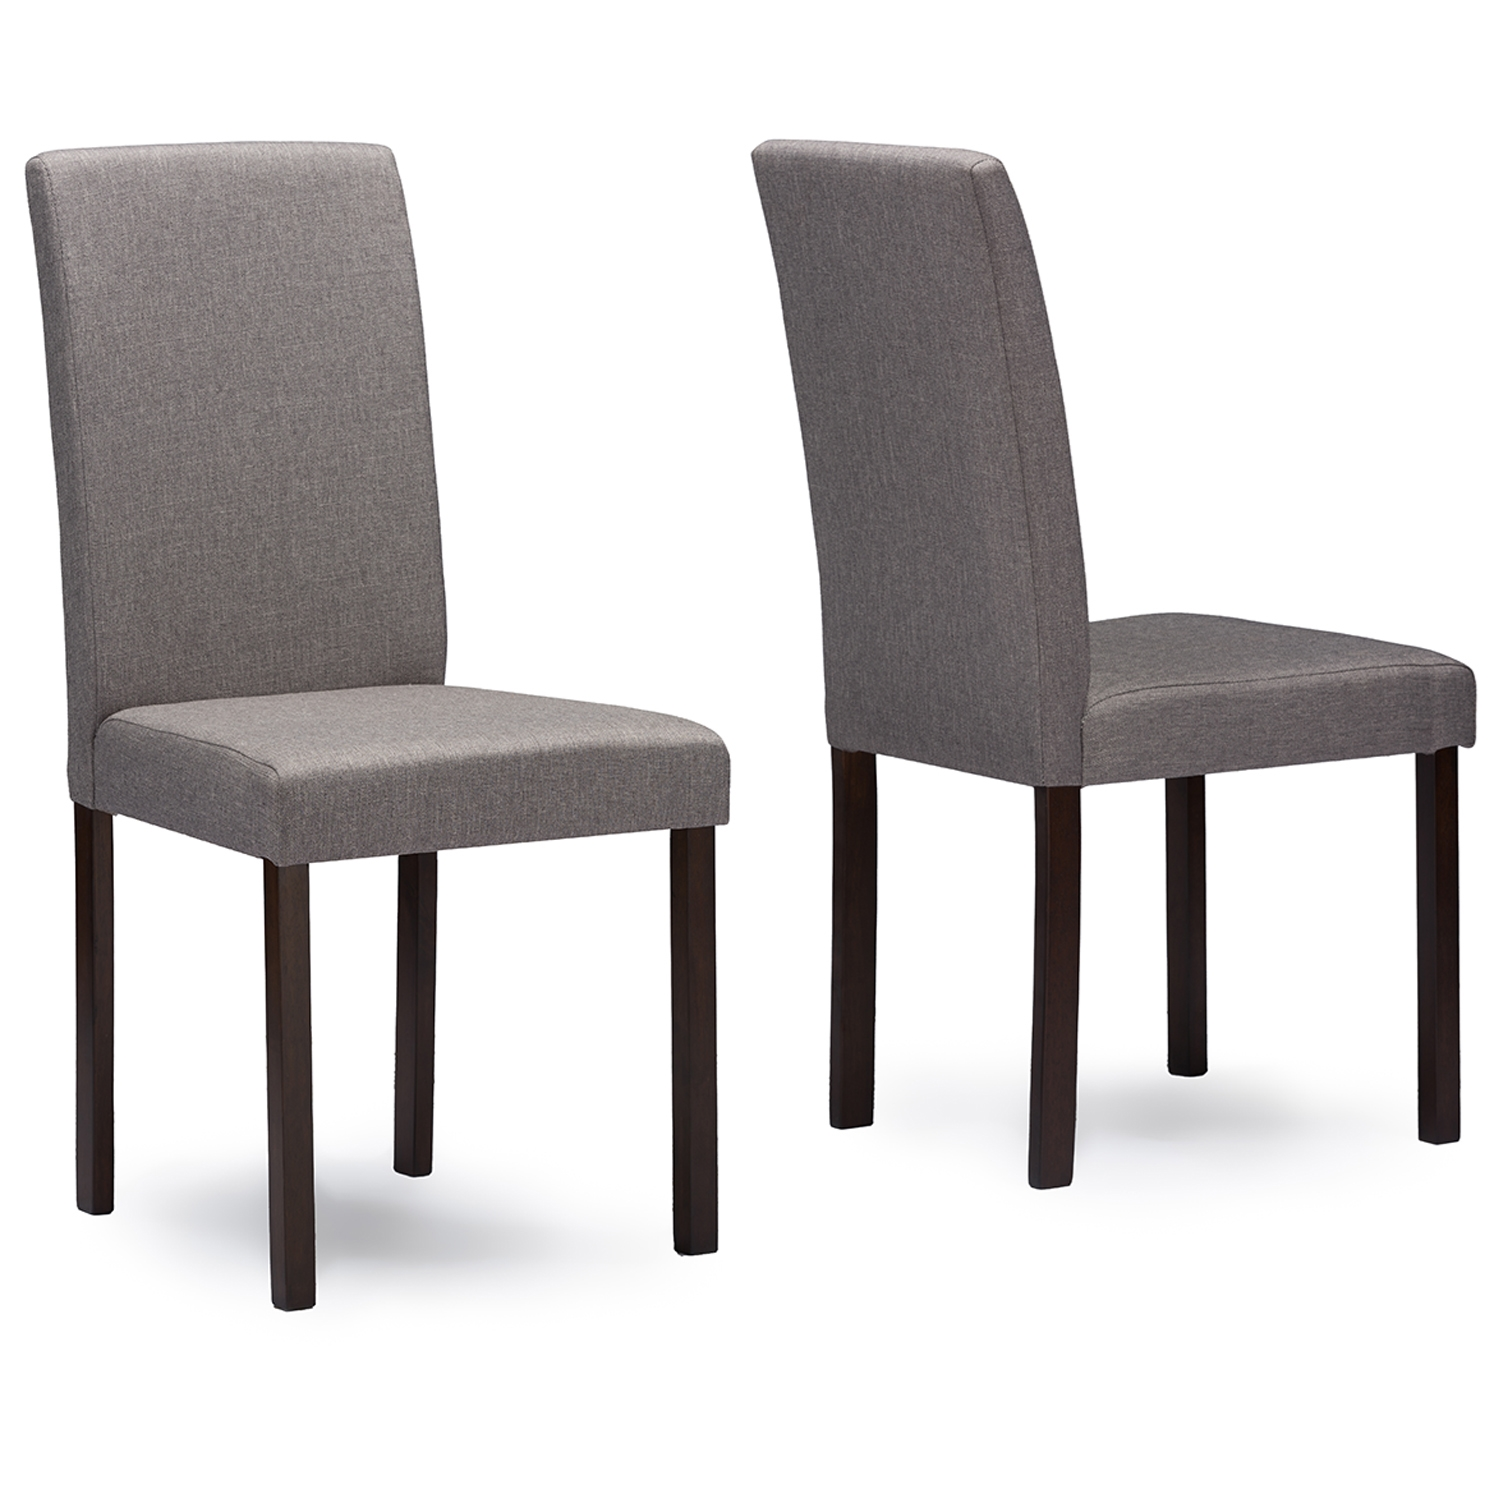 Dining Room Chair Fabric Baxton Studio Andrew Contemporary Espresso Wood Grey Fabric Dining Chair